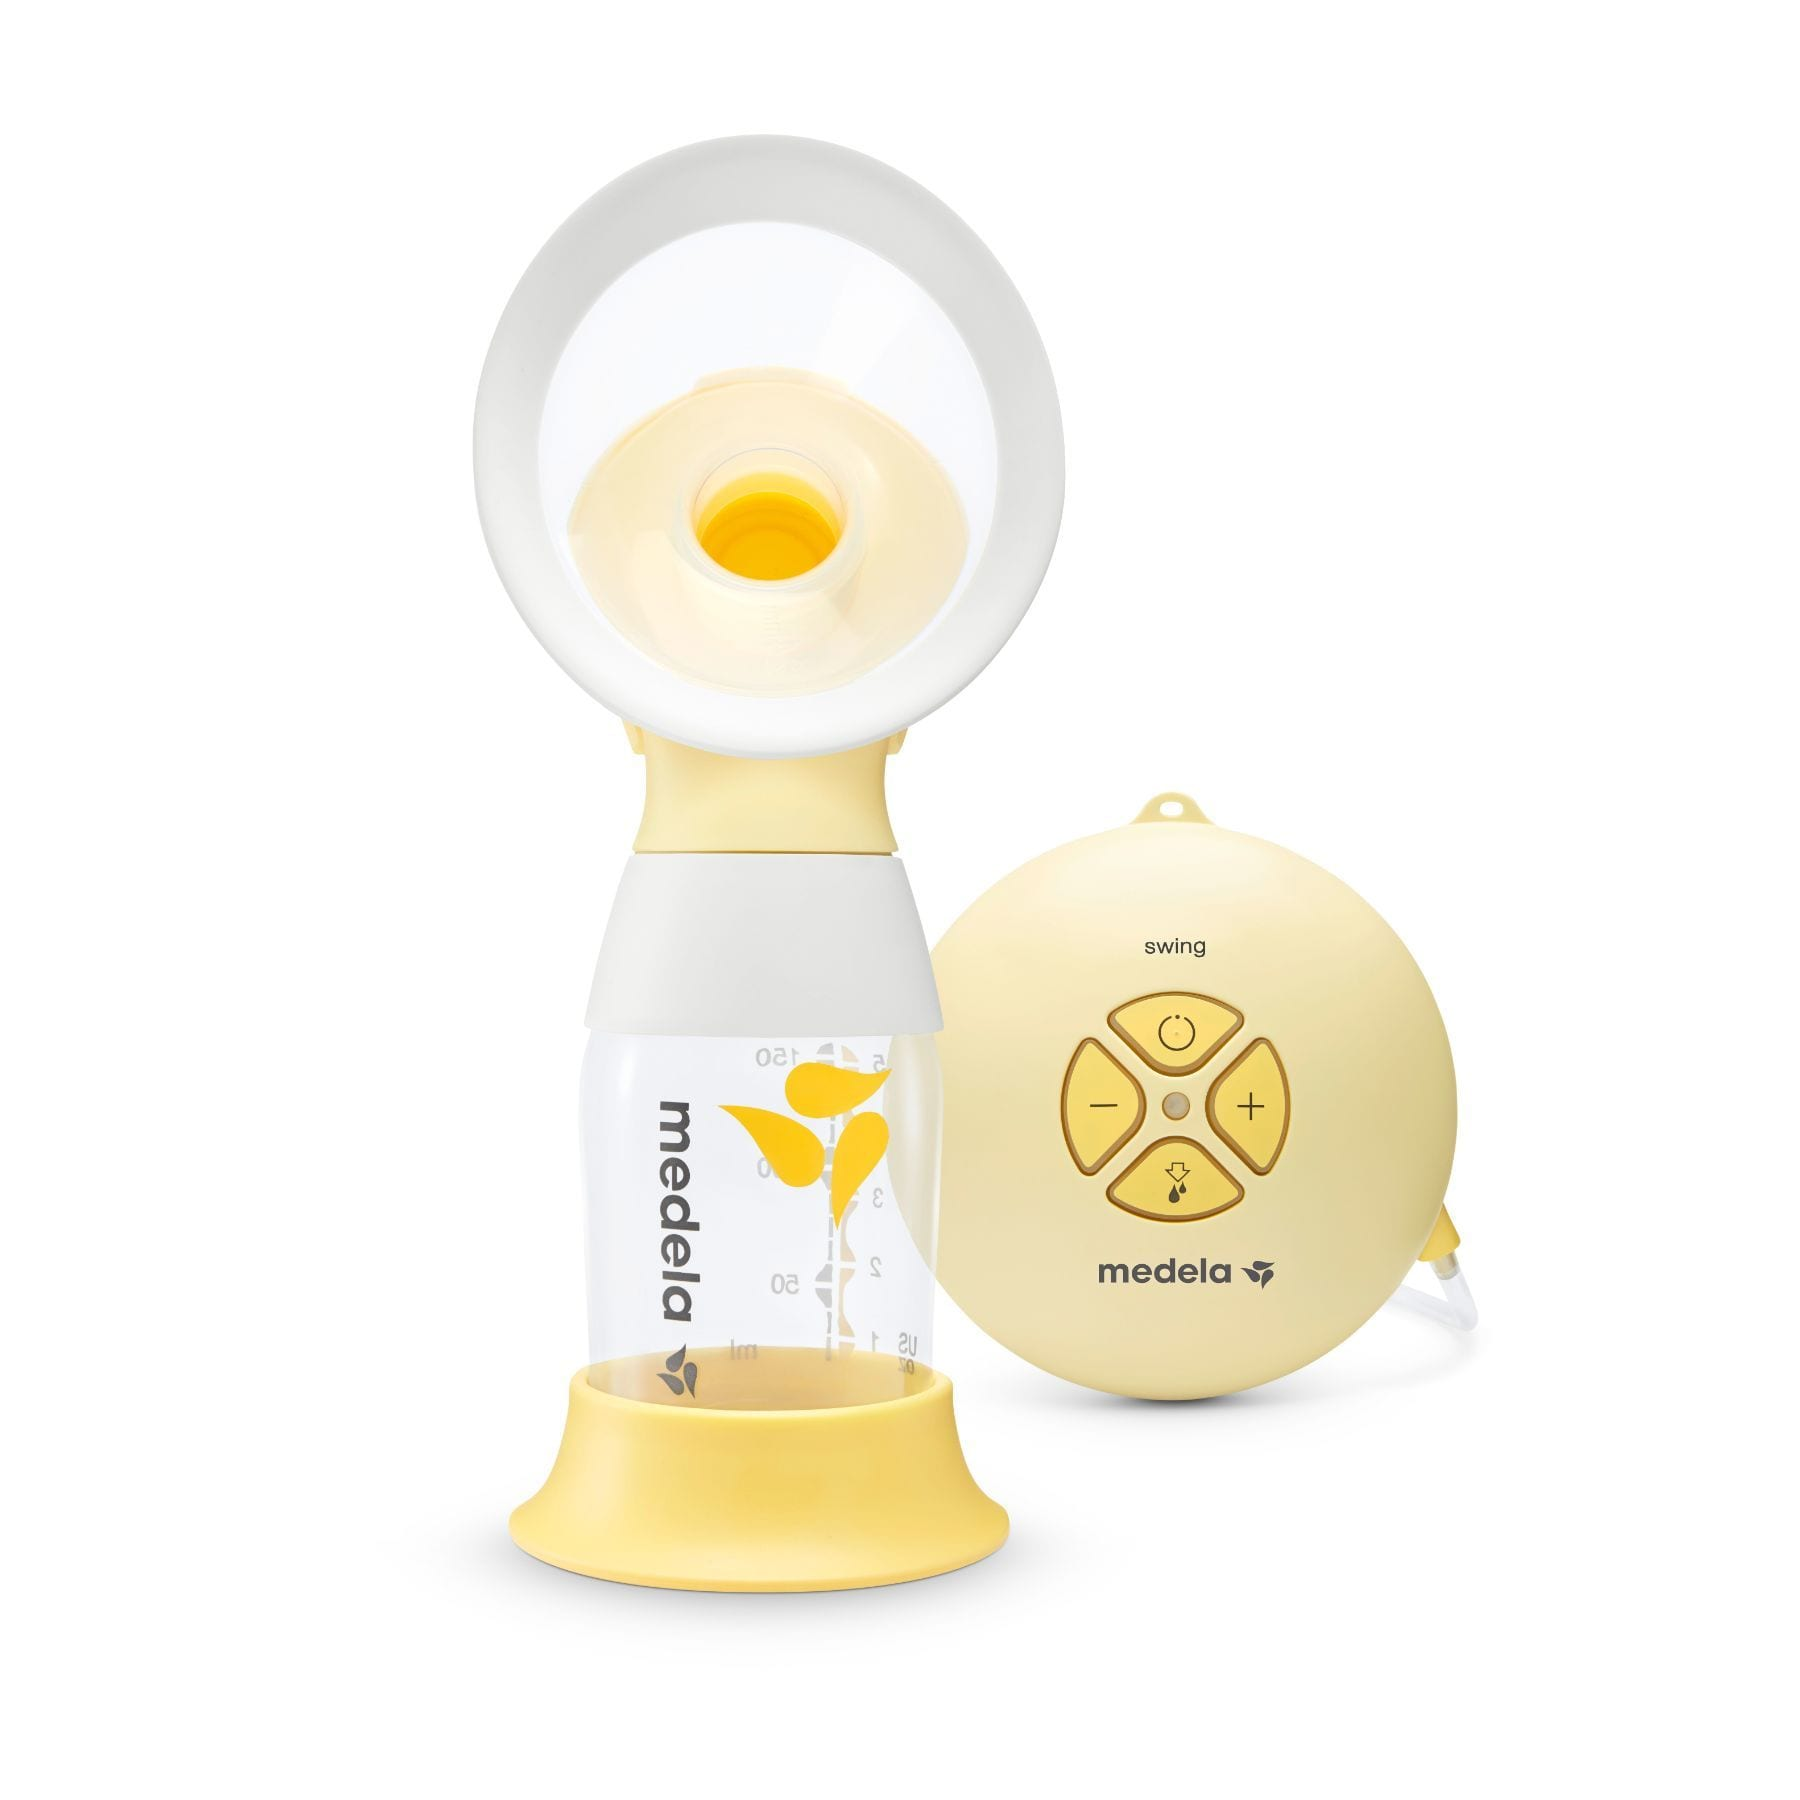 Medela Swing Flex Breastpump